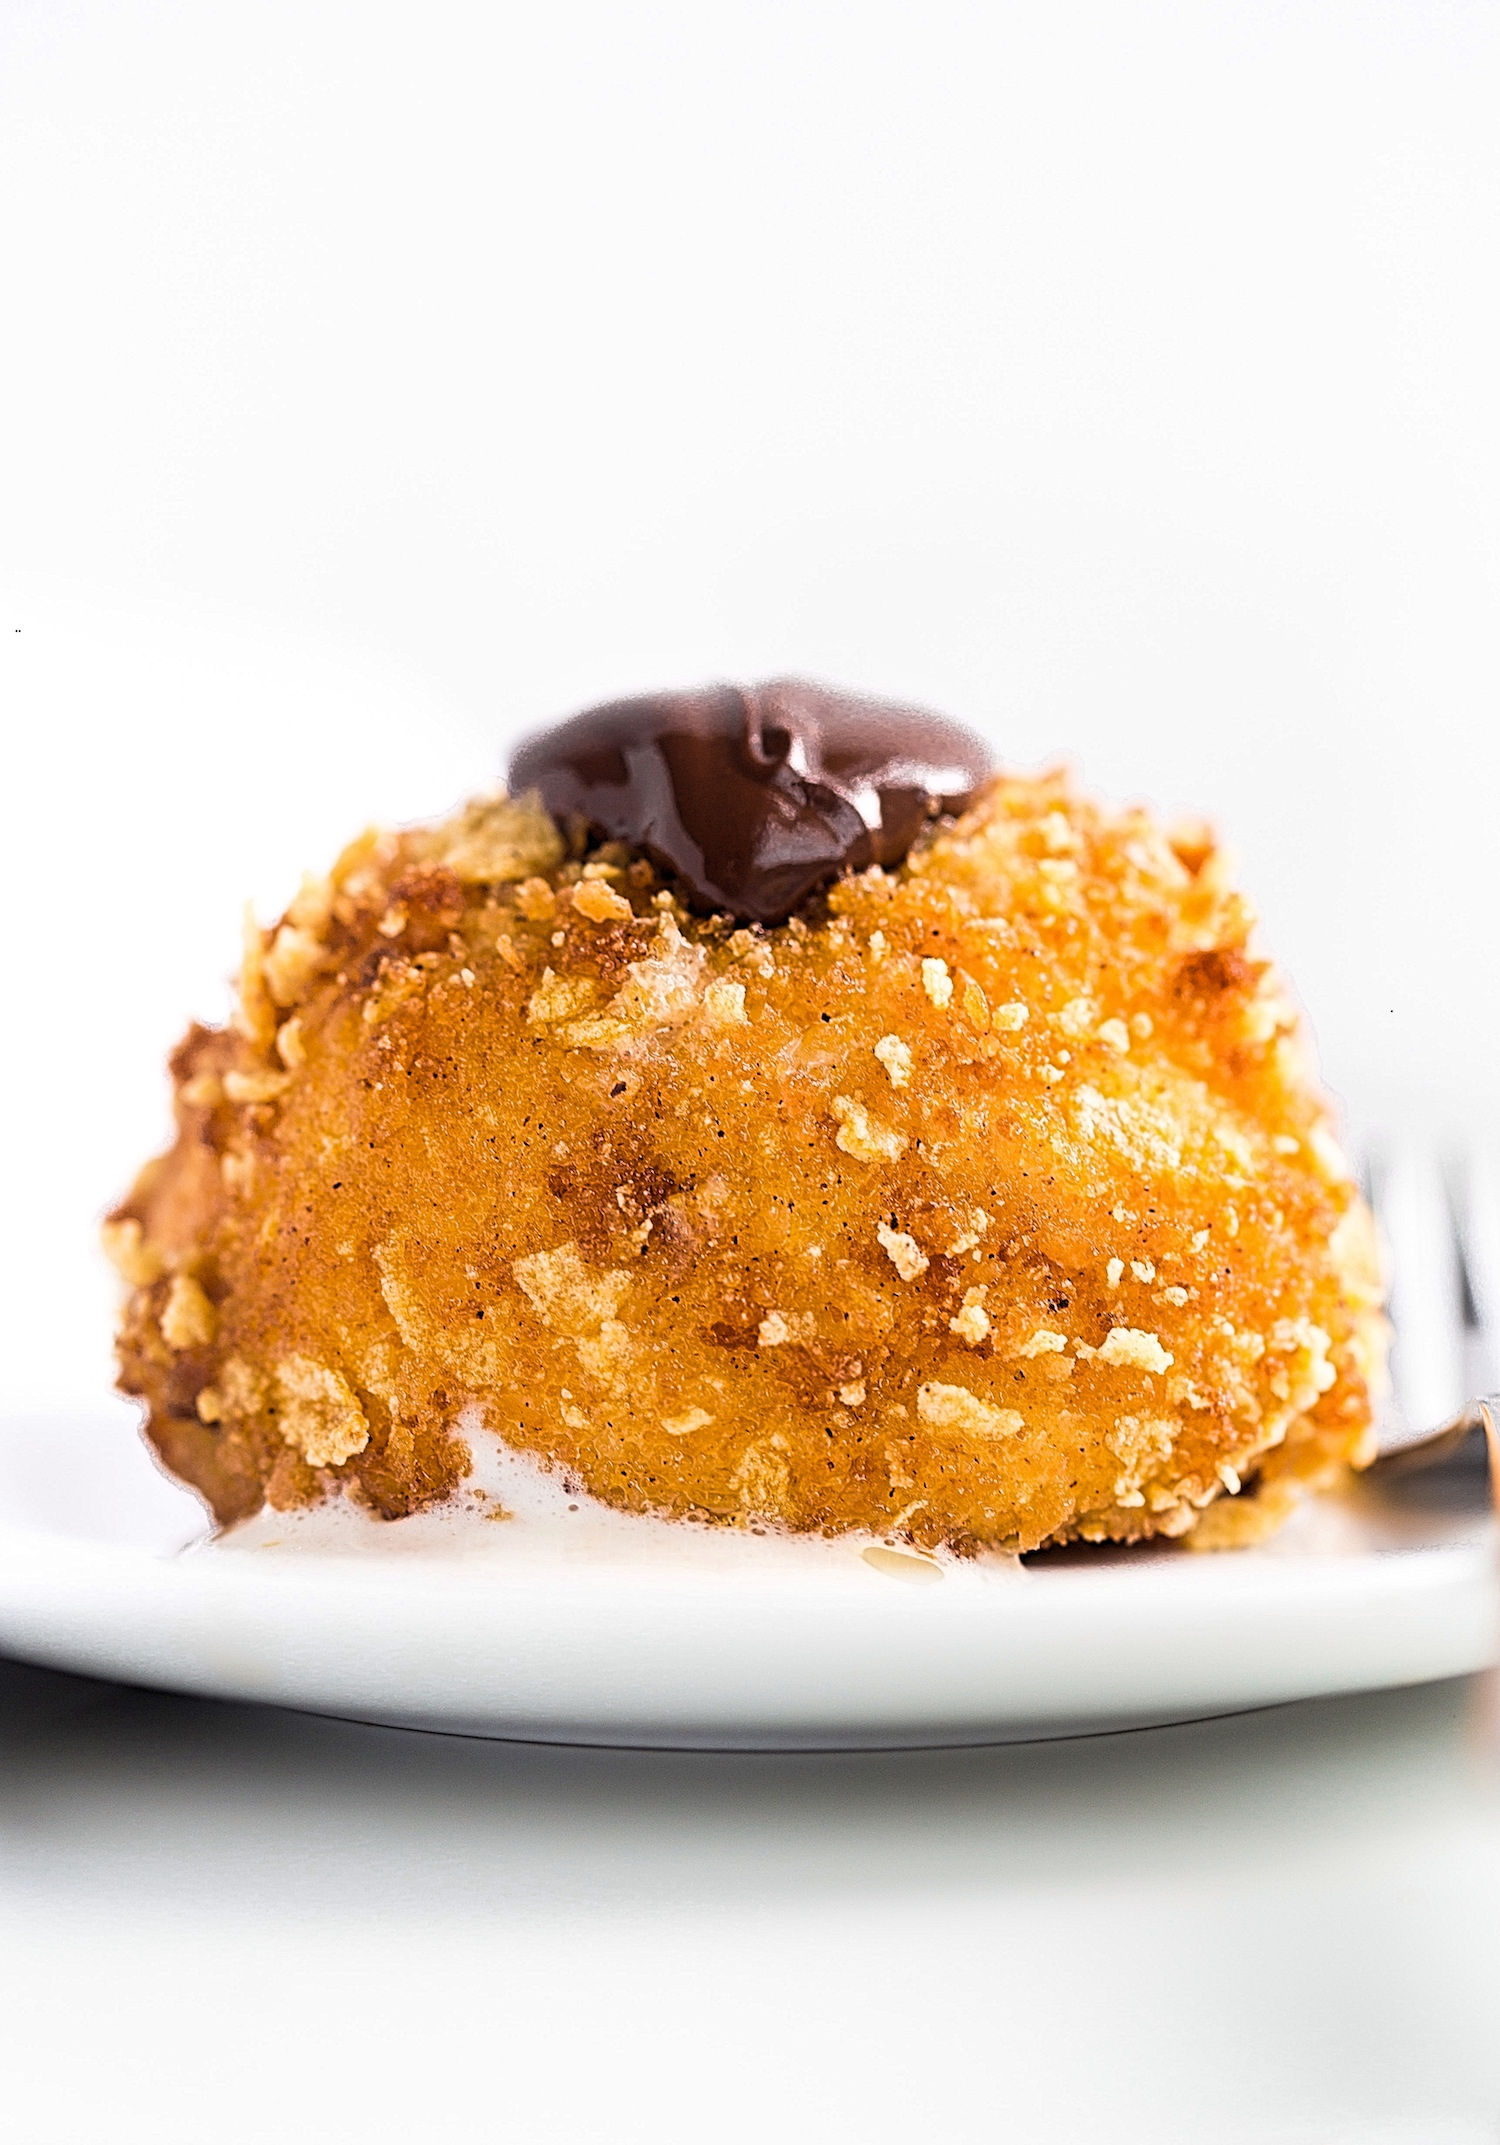 Deep Fried Ice Cream: vanilla ice cream coated in a sweet, crunchy cookie topping, deep-fried for the ultimate hot and cold dessert!   TrufflesandTrends.com